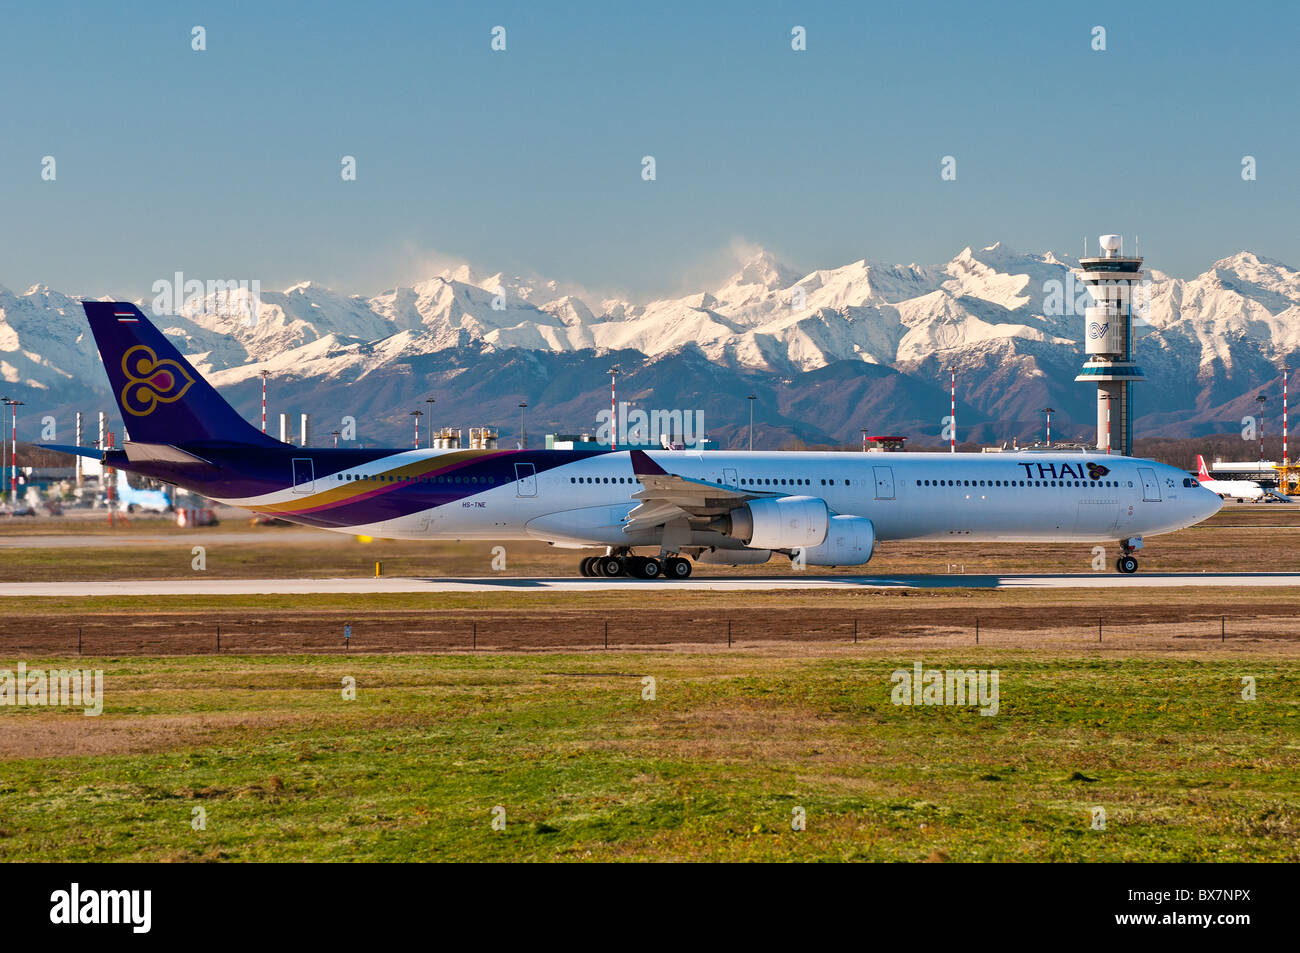 Thai airways' Airbus 340-600 ready for takeoff with the snowy Alps in the background, Milan Malpensa airport, - Stock Image